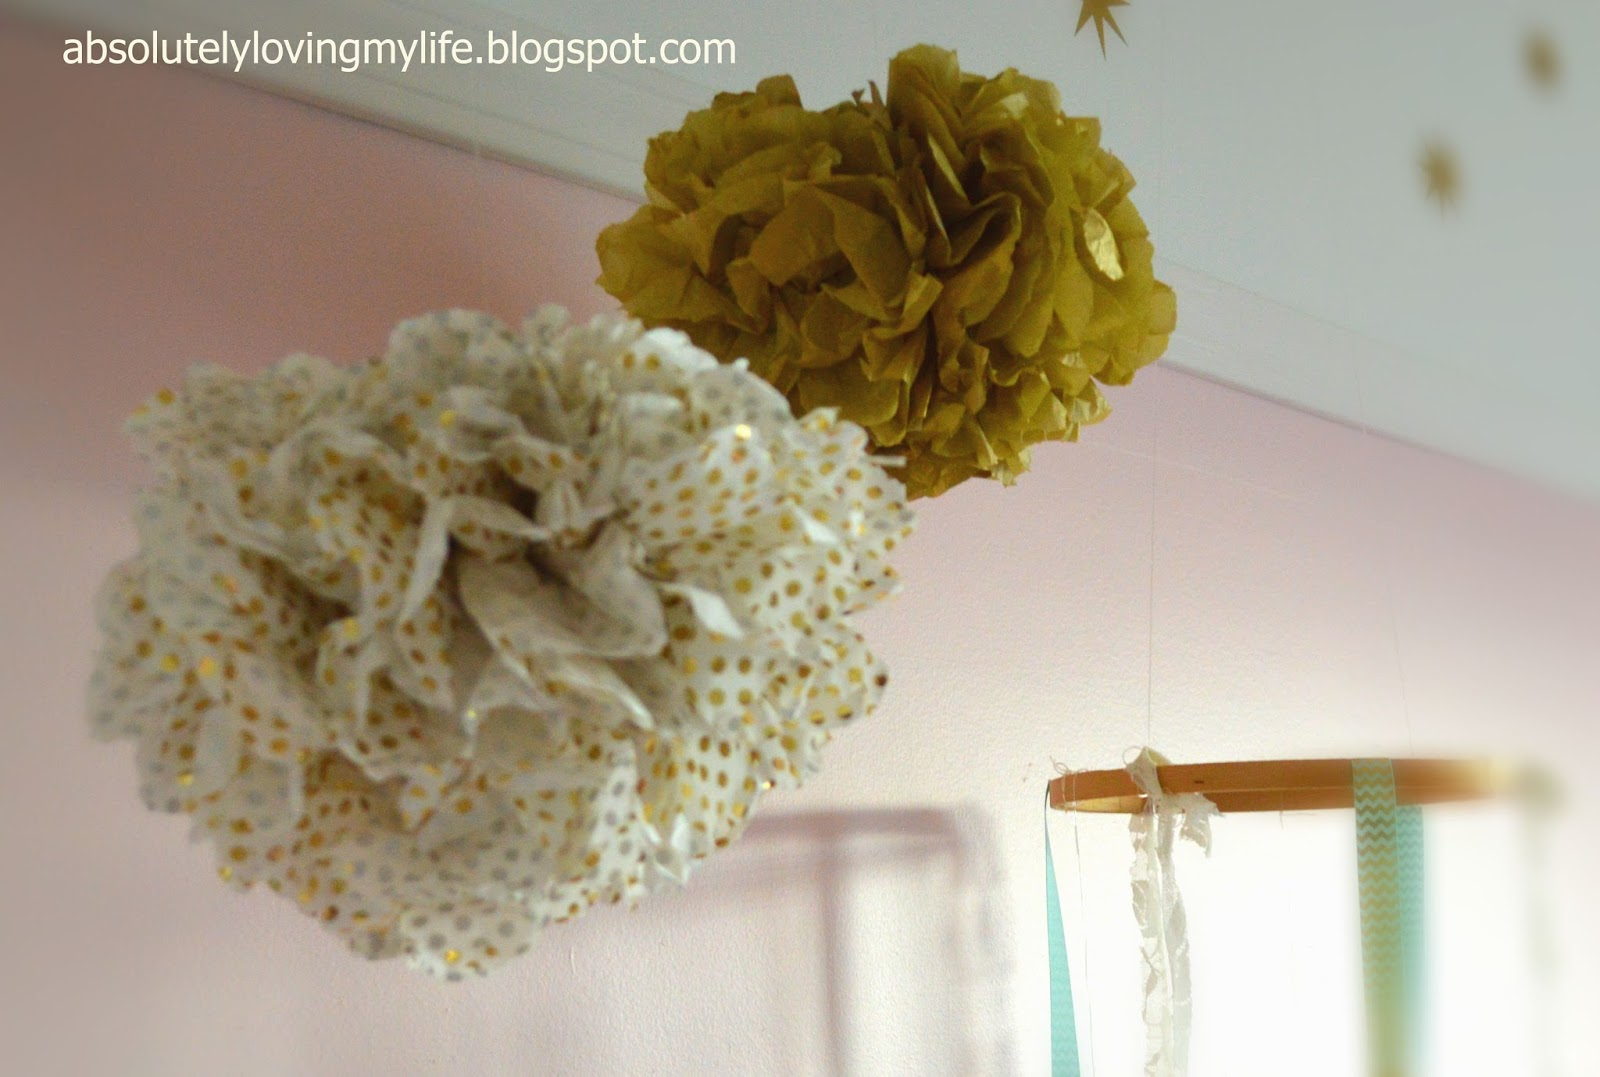 where can i buy tissue paper pom poms Tissue paper pompoms pom poms balls party wedding hanging ceiling  pink  and white tissue paper flower pom poms - choose 6 - 14 - 3 or 9 packs.